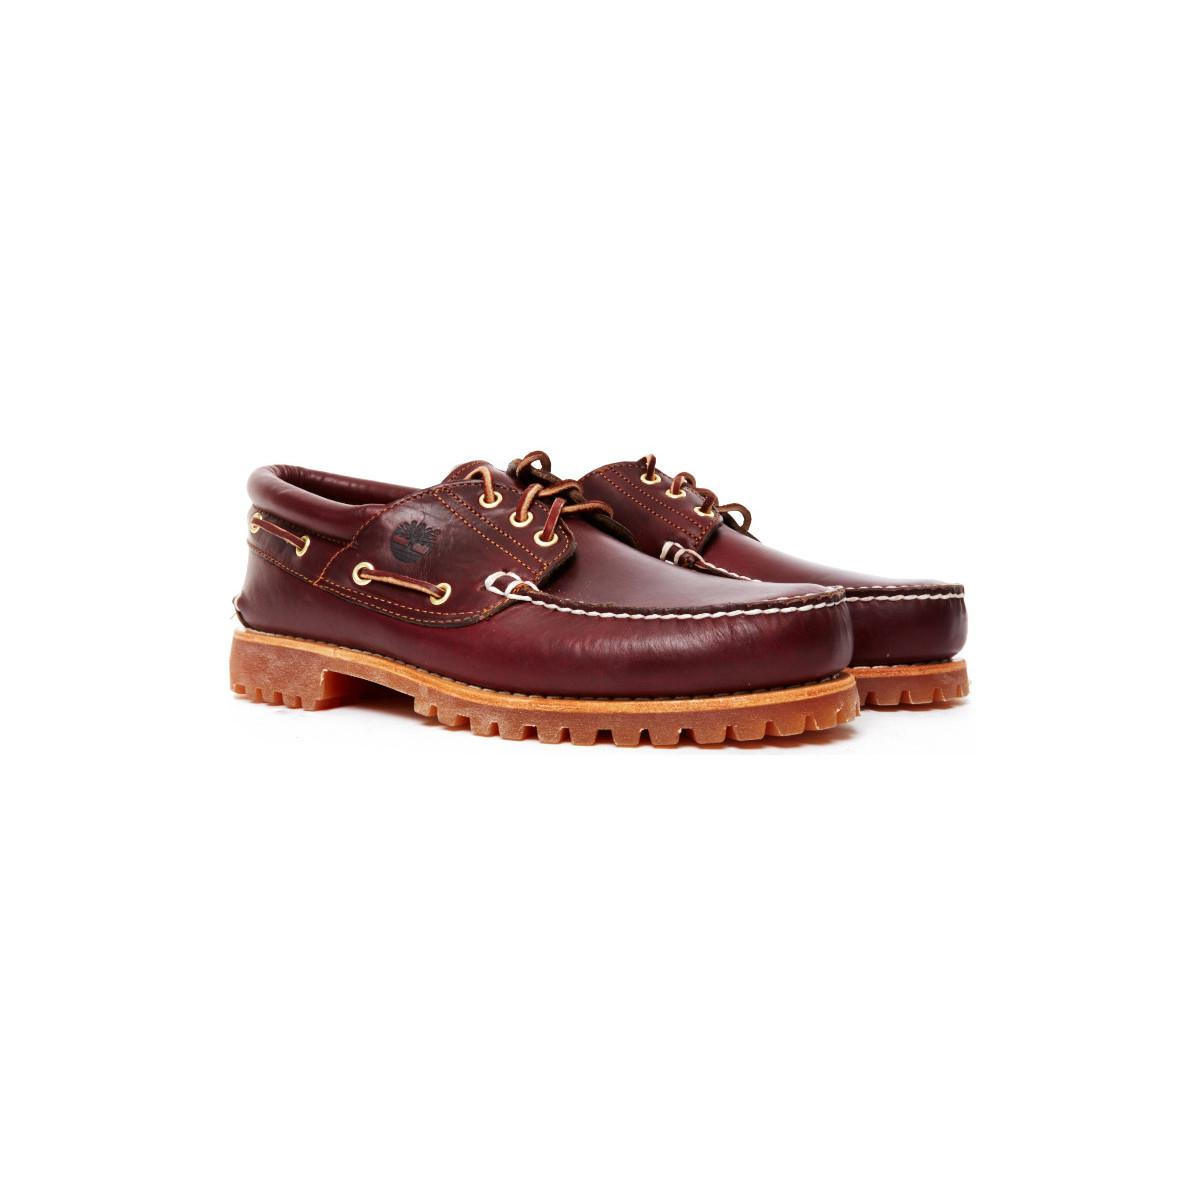 new style 6b5d1 889e8 Authentics In 3 Shoes Boat Burgundy Lug Classic Mens Eye Timberland  dBqSWznFHd